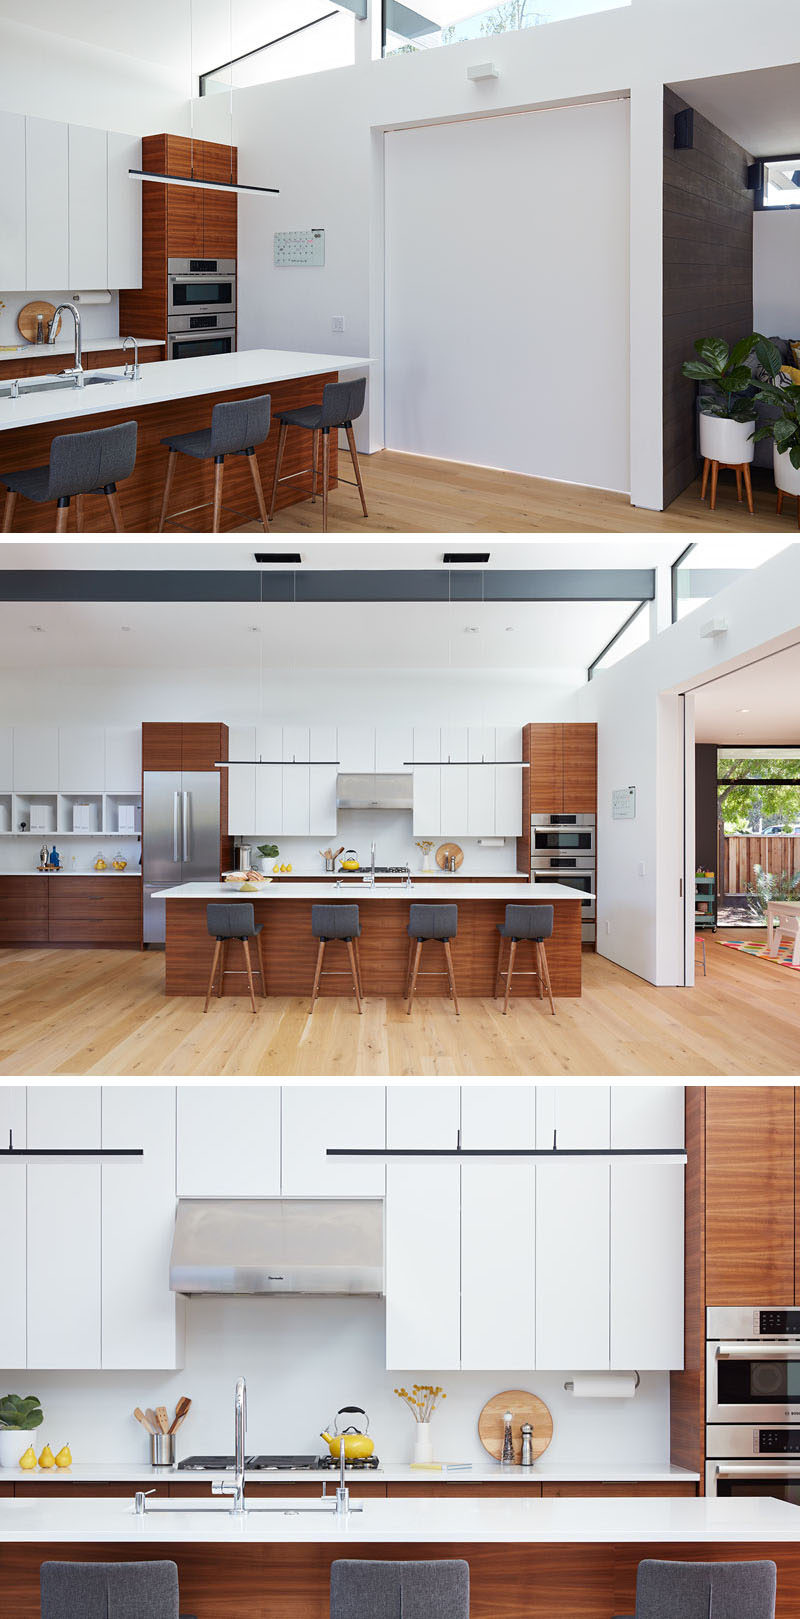 A sliding door can close off the playroom from the main social areas of the house. In the kitchen, white minimalist cabinets have been paired with wood elements. #ModernKitchen #KitchenDesign #WoodAndWhiteKitchen